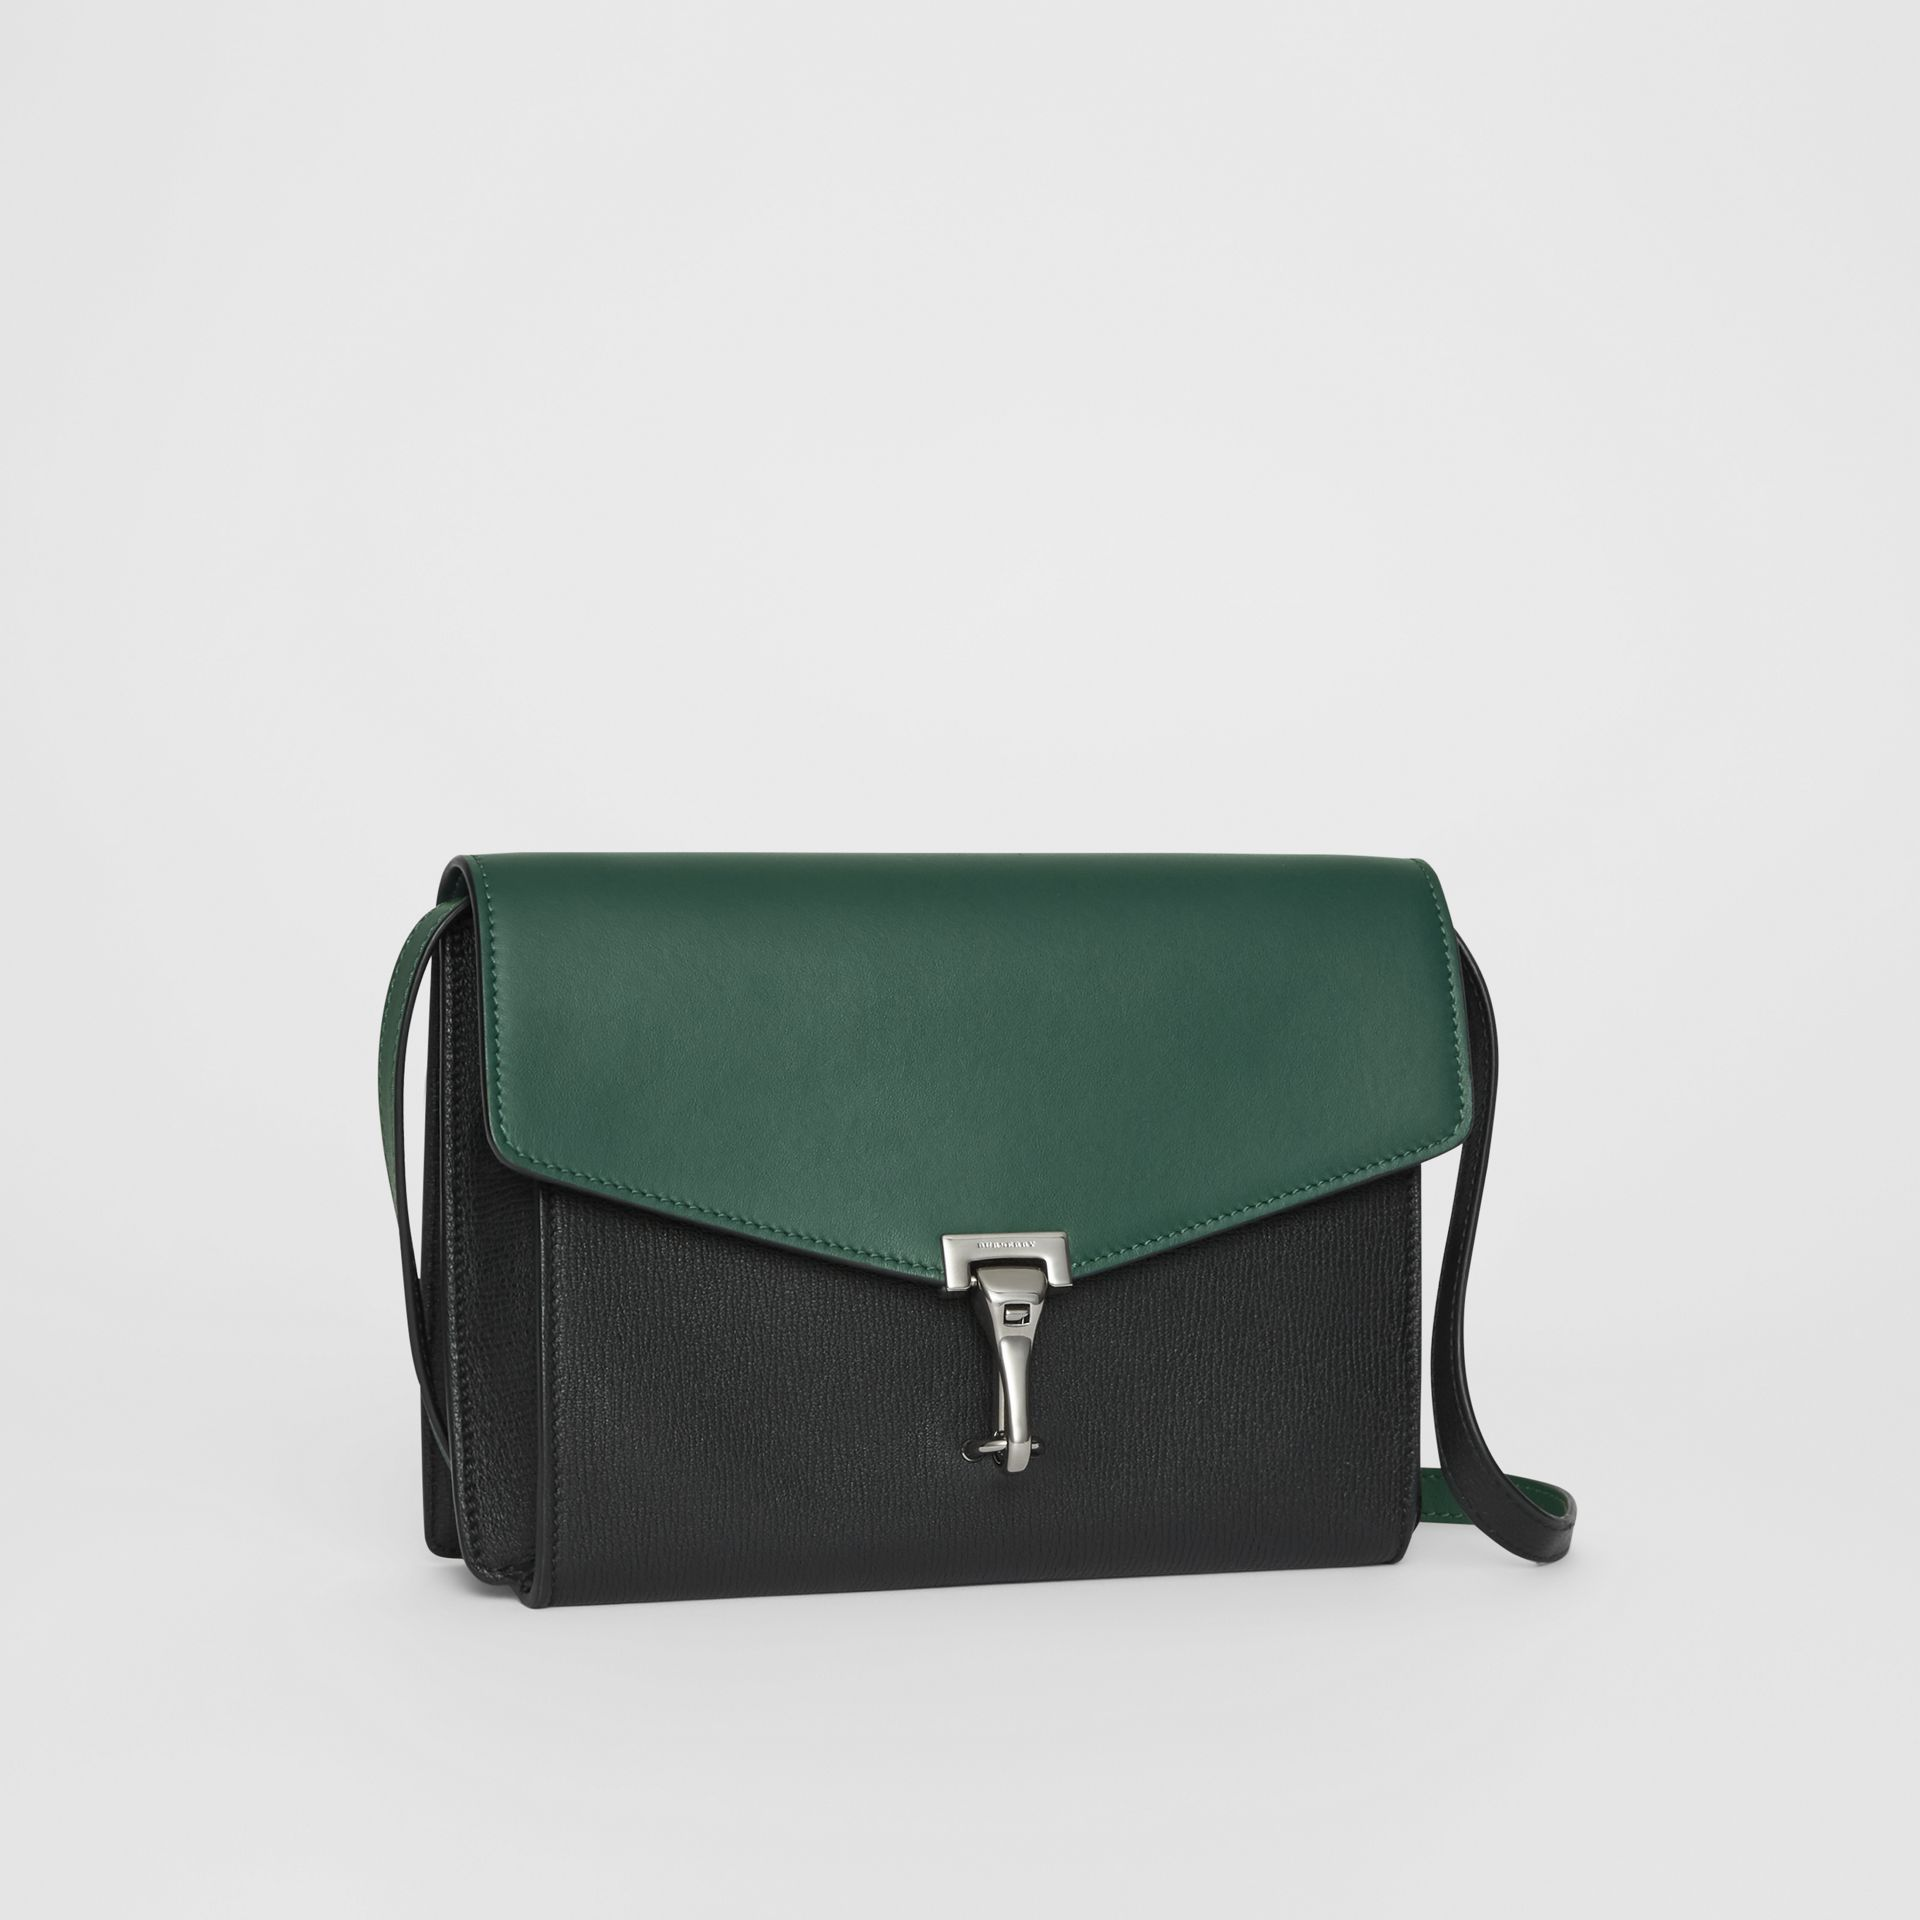 Two-tone Leather Crossbody Bag in Black/sea Green - Women | Burberry - gallery image 6